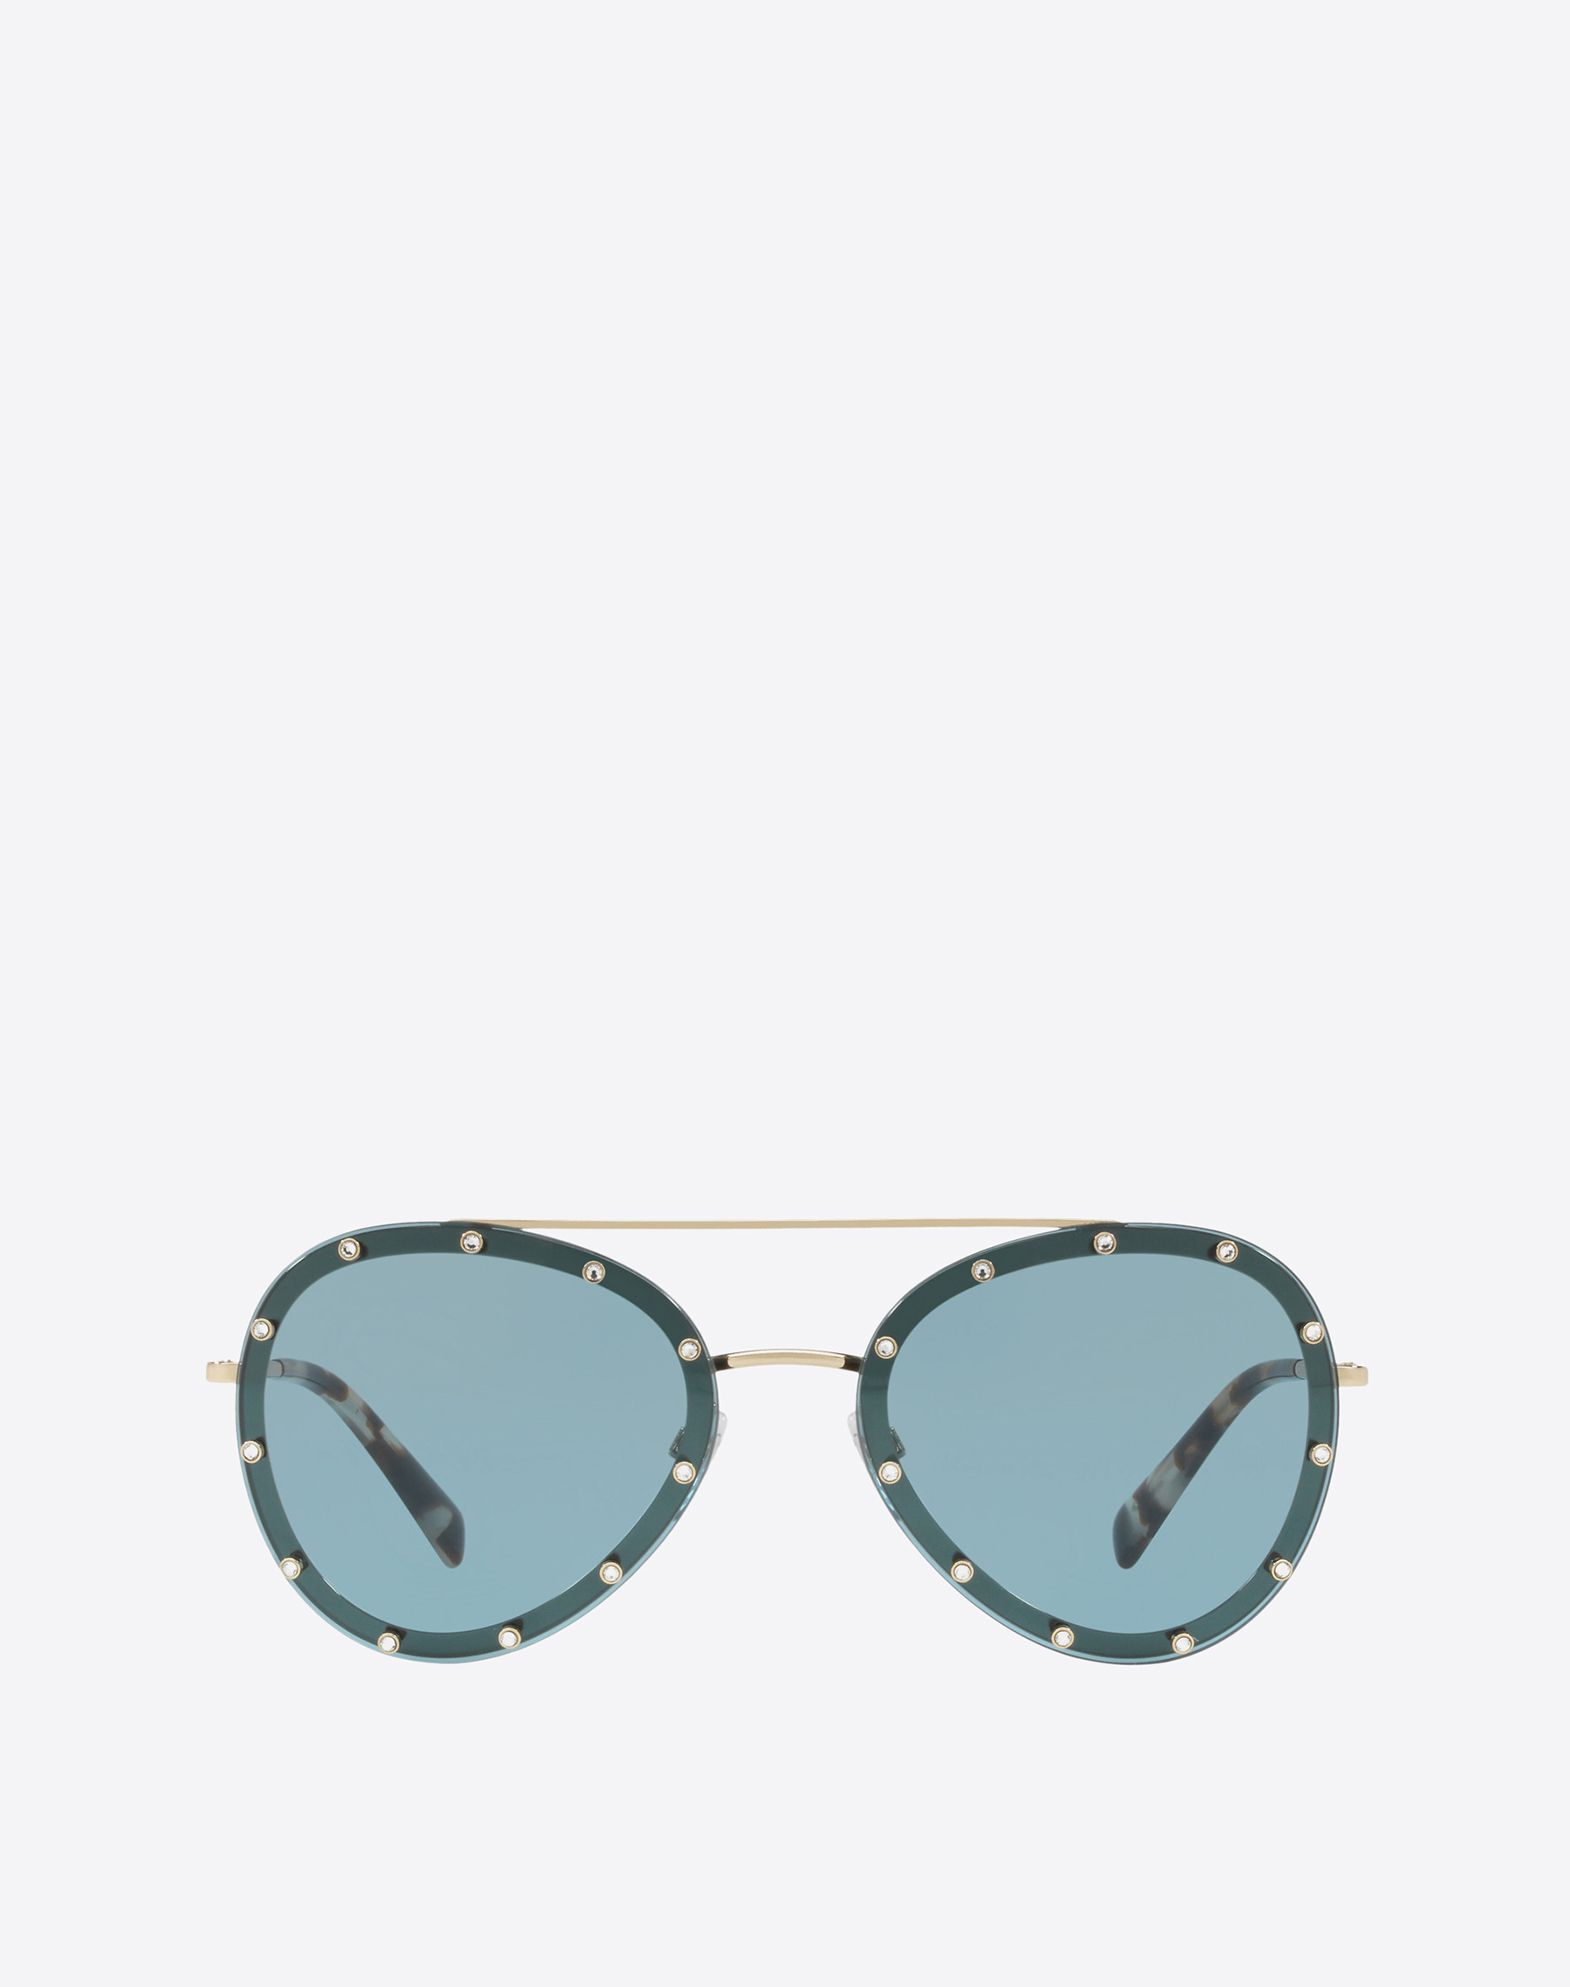 CRYSTAL STUDDED AVIATOR  FRAME METAL SUNGLASSES